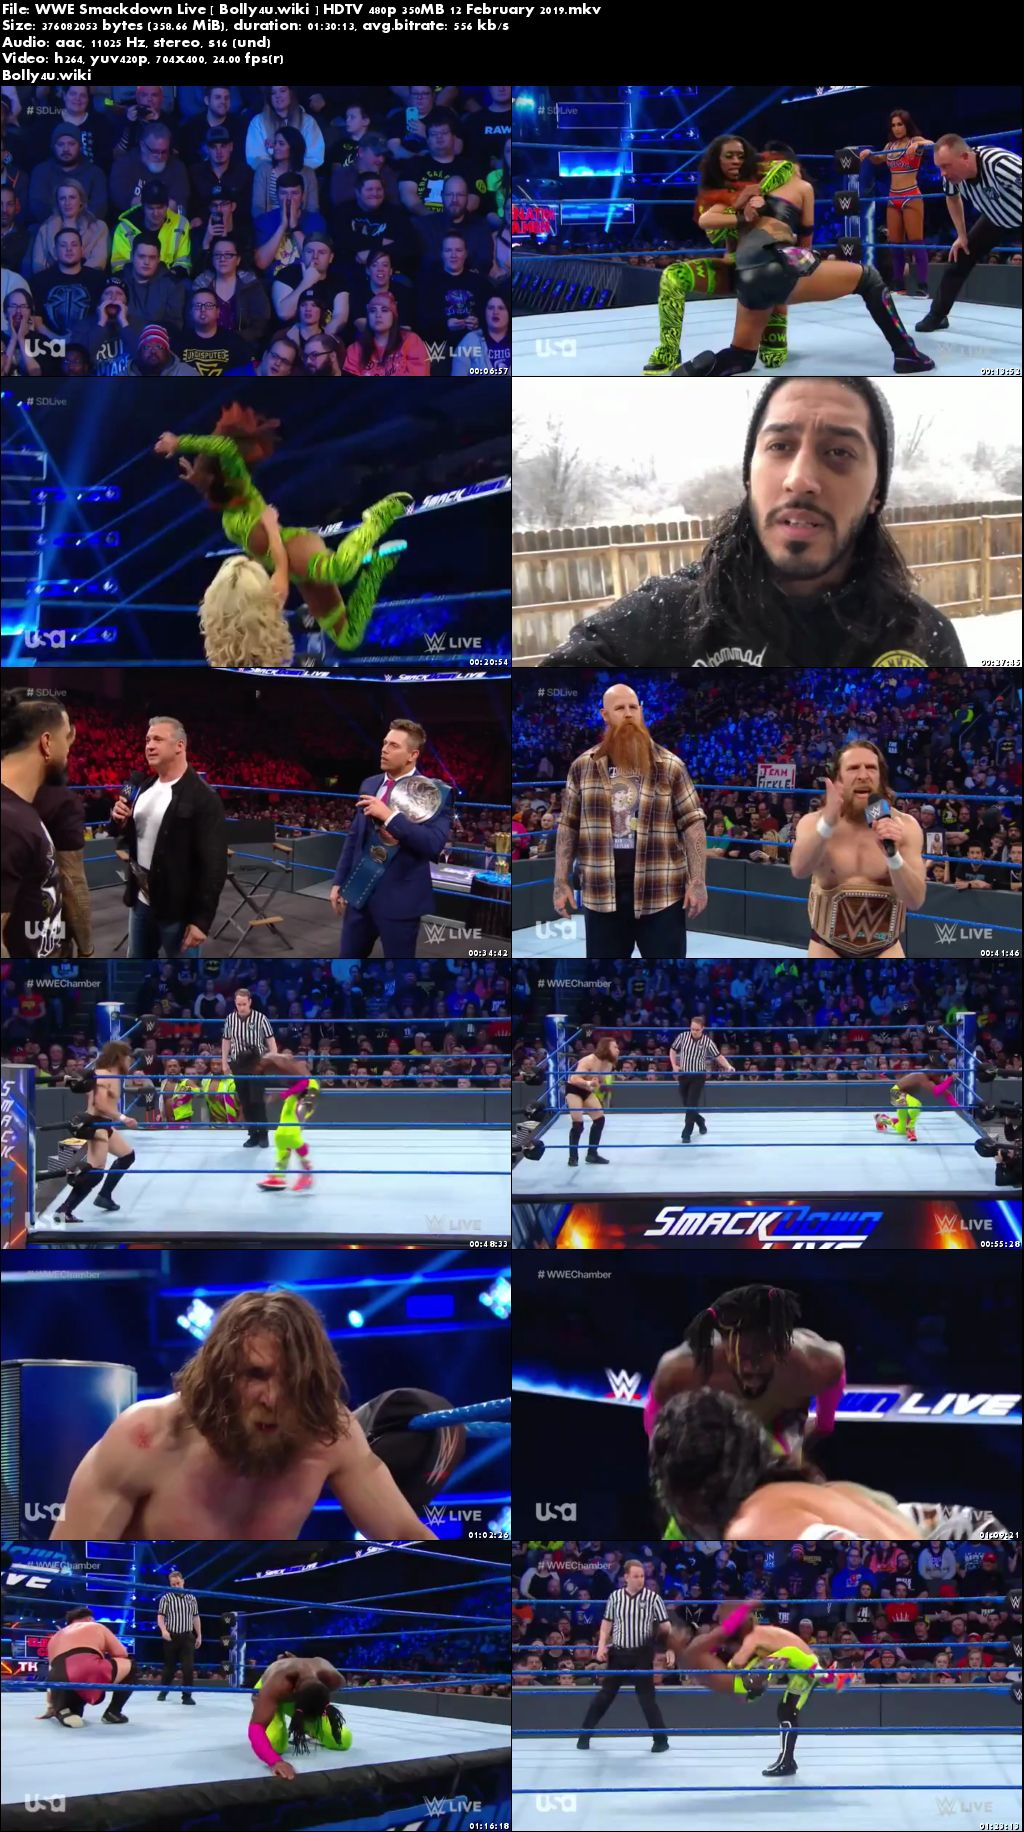 WWE Smackdown Live HDTV 480p 350MB 12 February 2019 Download